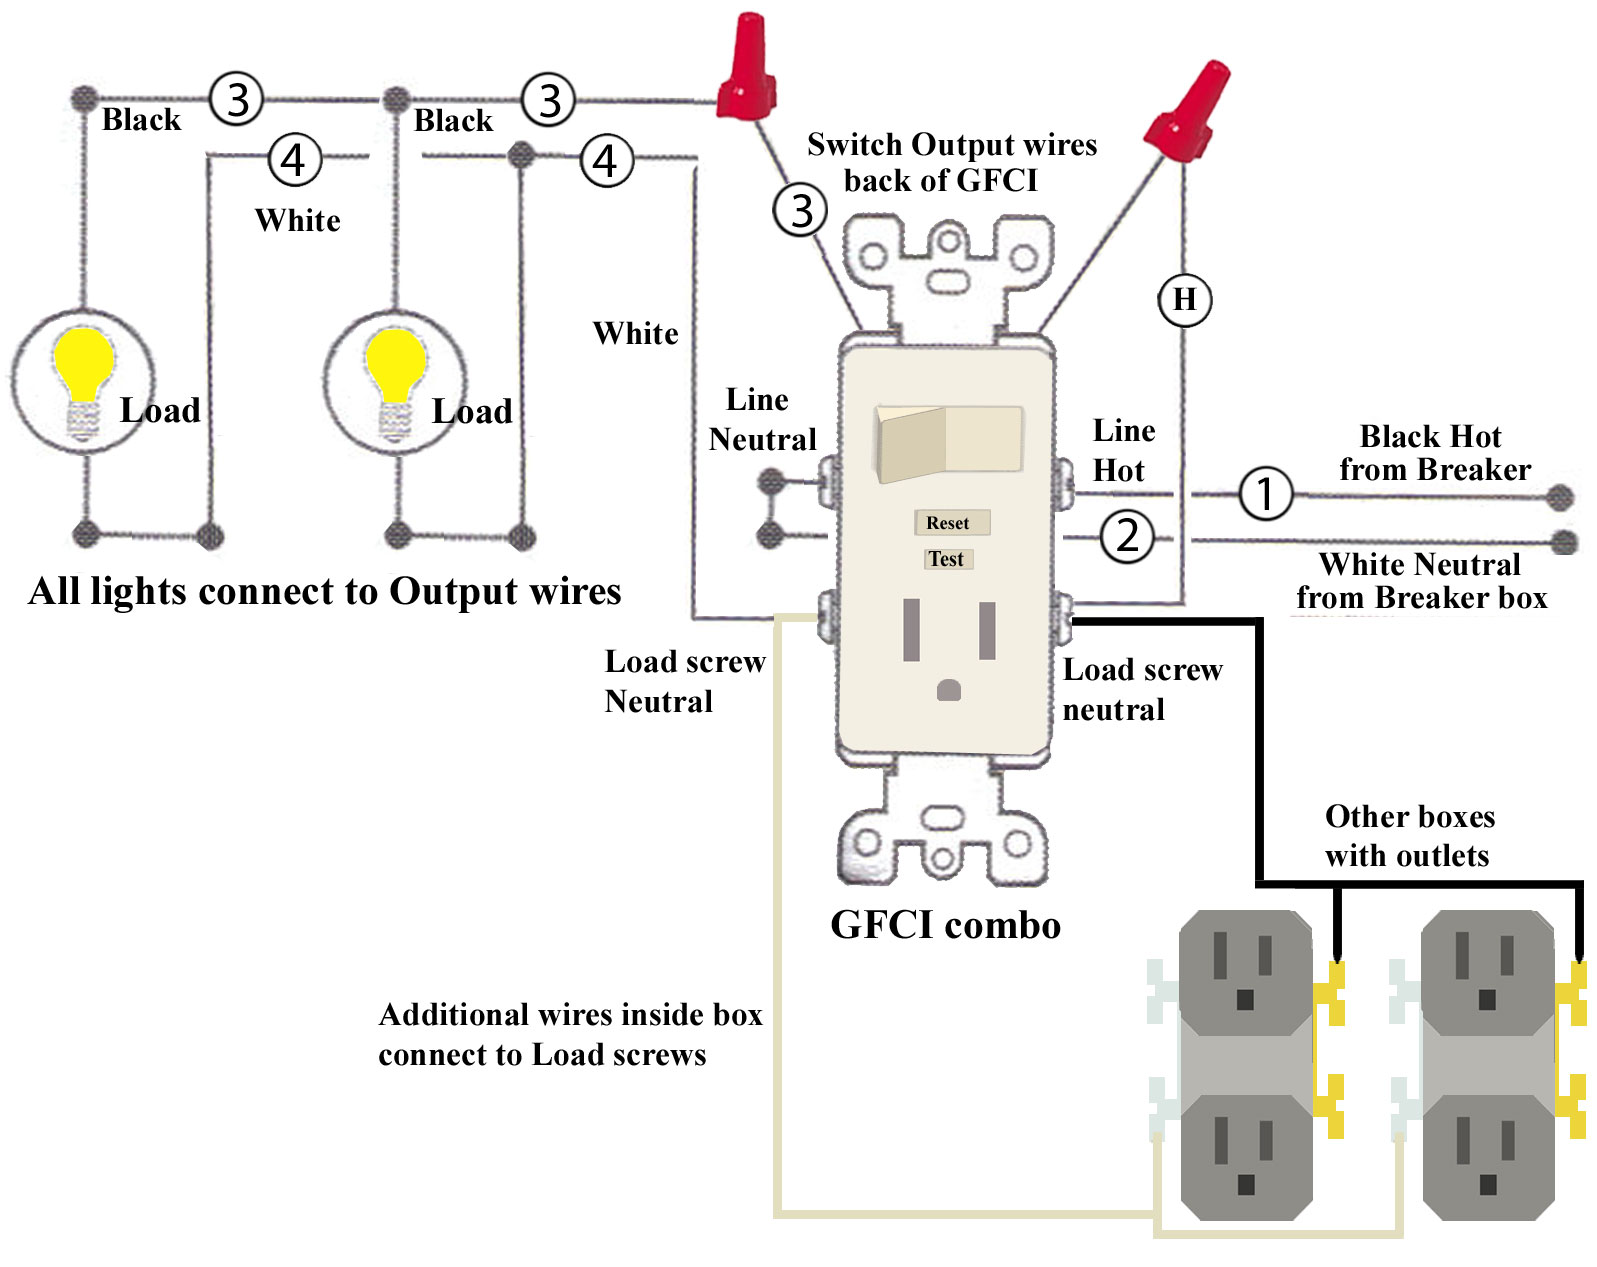 GFCI combo wiring3 update how to install and troubleshoot gfci GFCI Breaker Wiring Diagram at crackthecode.co